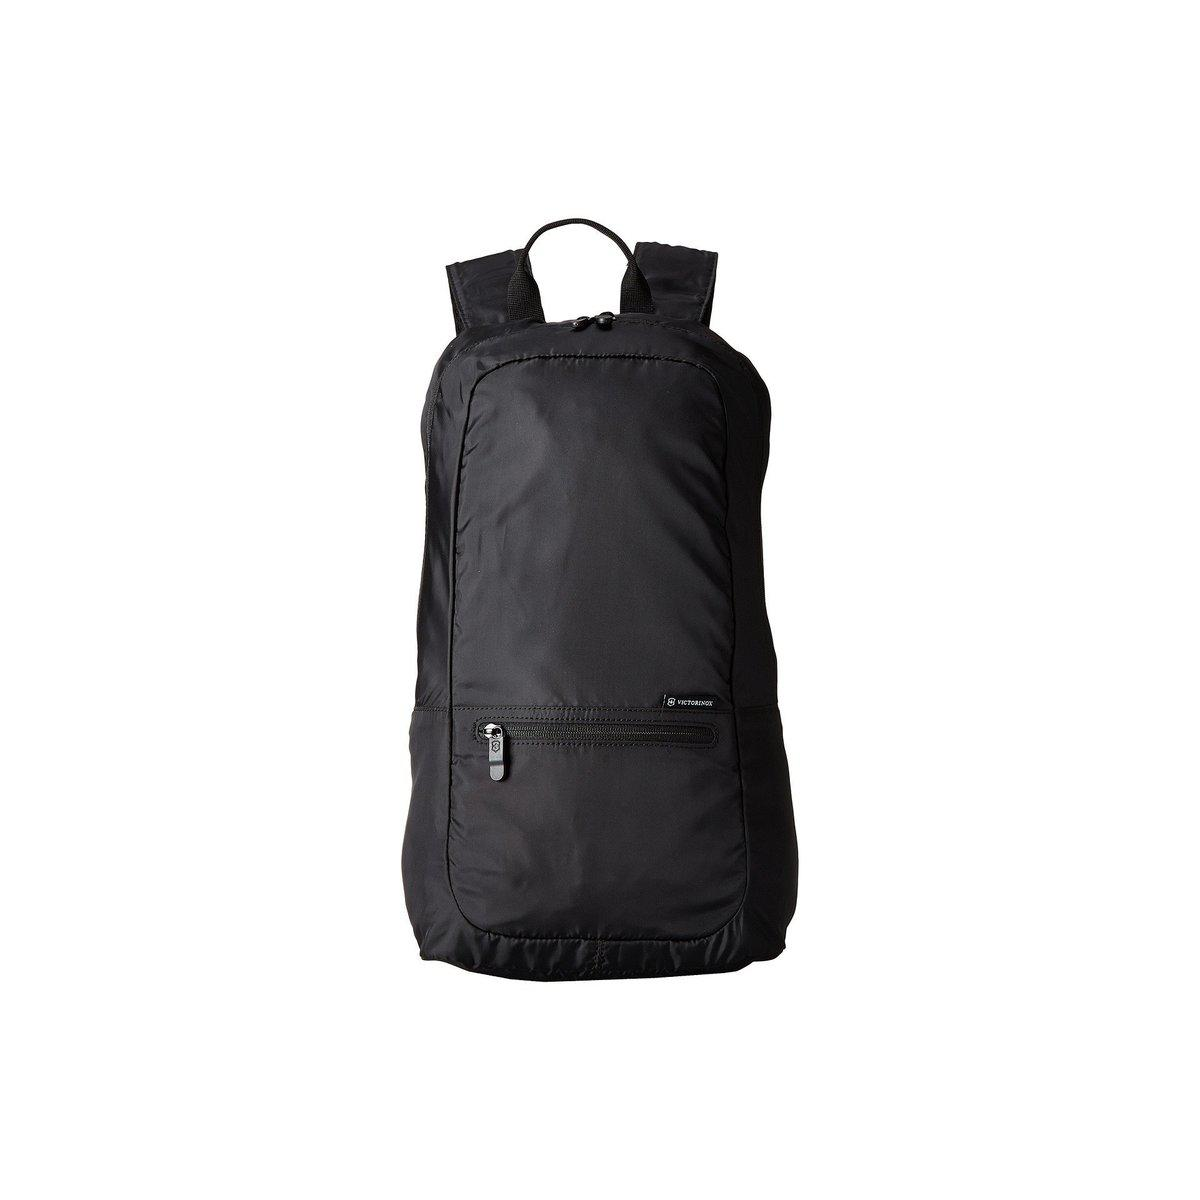 9279a77d590aa Lyst - Victorinox Packable Backpack in Black for Men